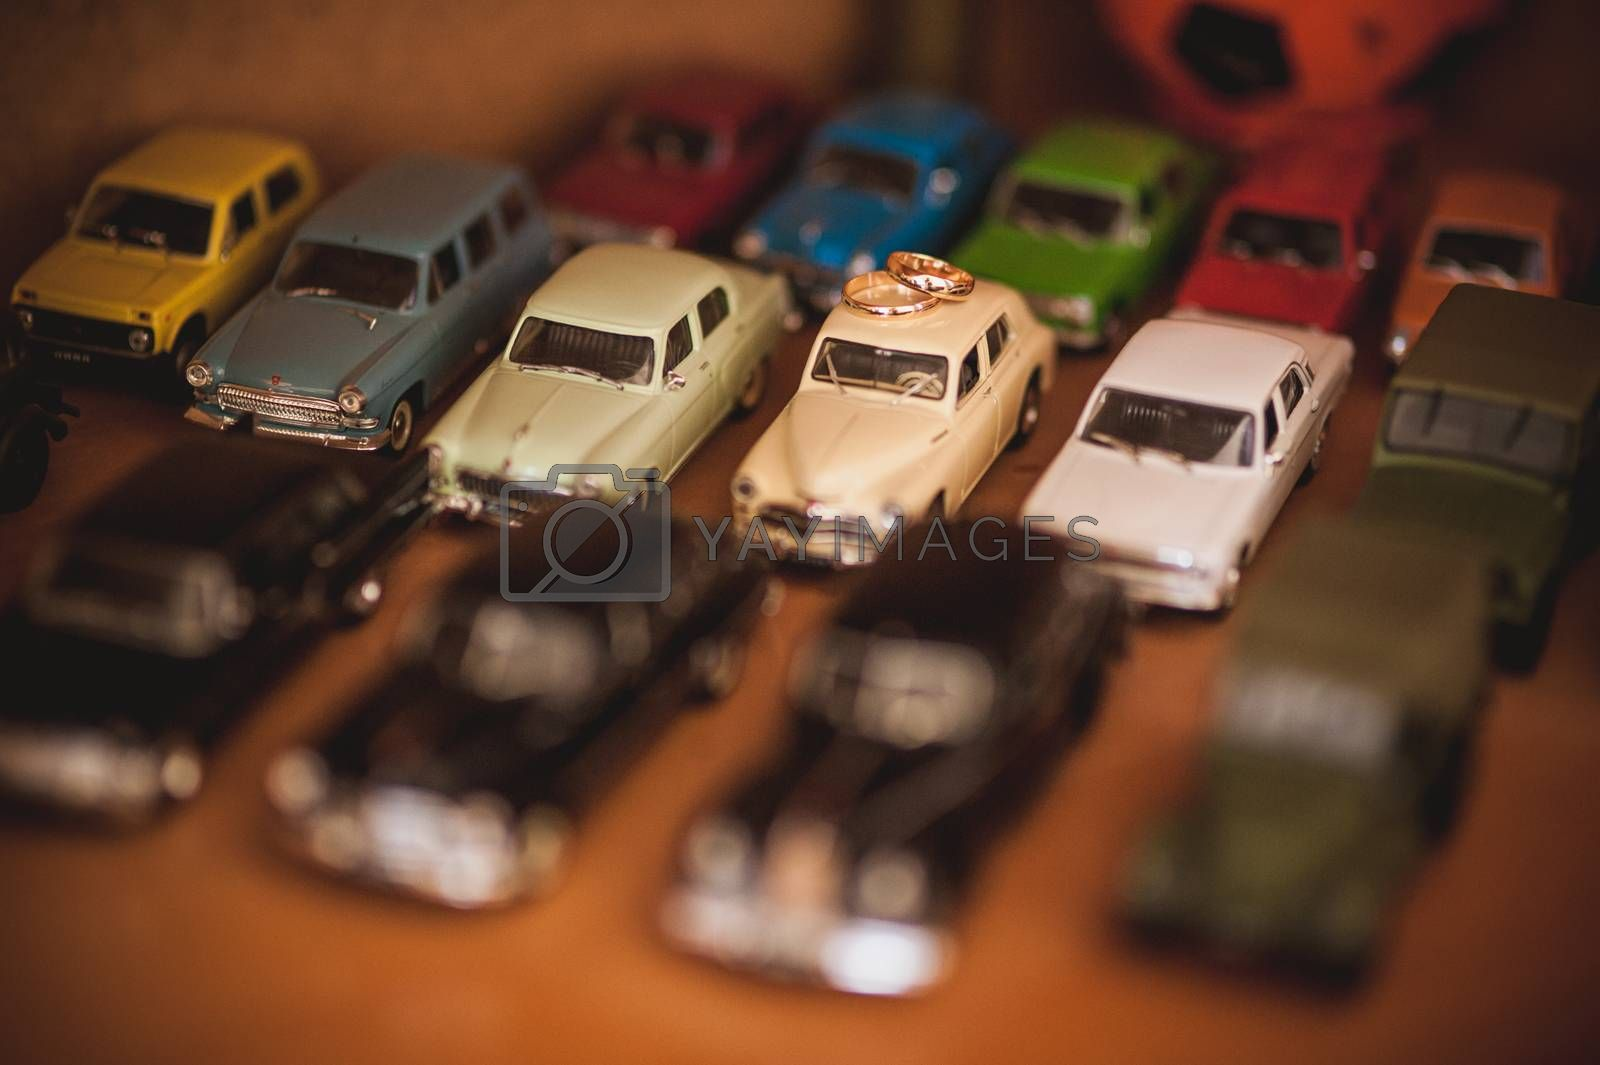 two gold wedding rings on top of toy car collection